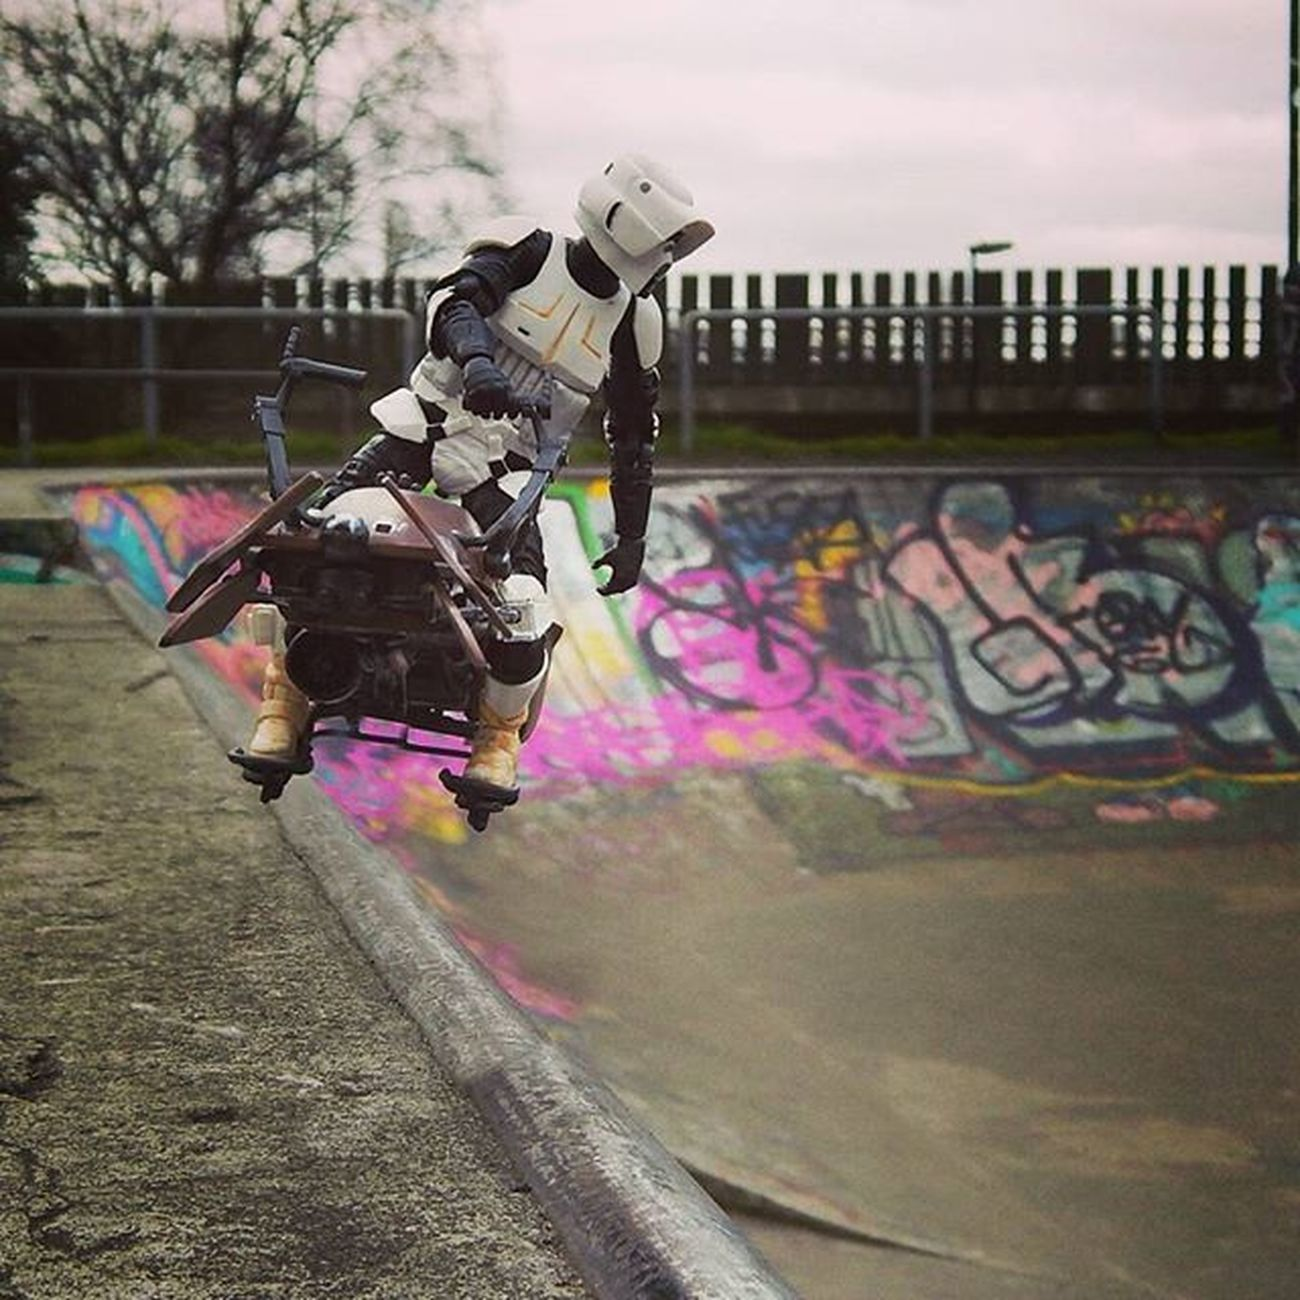 Scotty checks the drop in at the skate park, determined to get some serious air today! Bikerscout Scottythebikerscout . Exhibitionpark Newcastleskatepark Skatecrunch Starwars3lite Toyoutsiders Toyphotography Toyark Toptoyphotos Toydiscovery Toycrewbuddies Toysaremydrug Toys4life Toyunion Wheretoysdwell Justanothertoygroup Zifu_toys Tgif_toys Toyfusion Toygroup_alliance Toyrevolution Rwt_imperialmarch